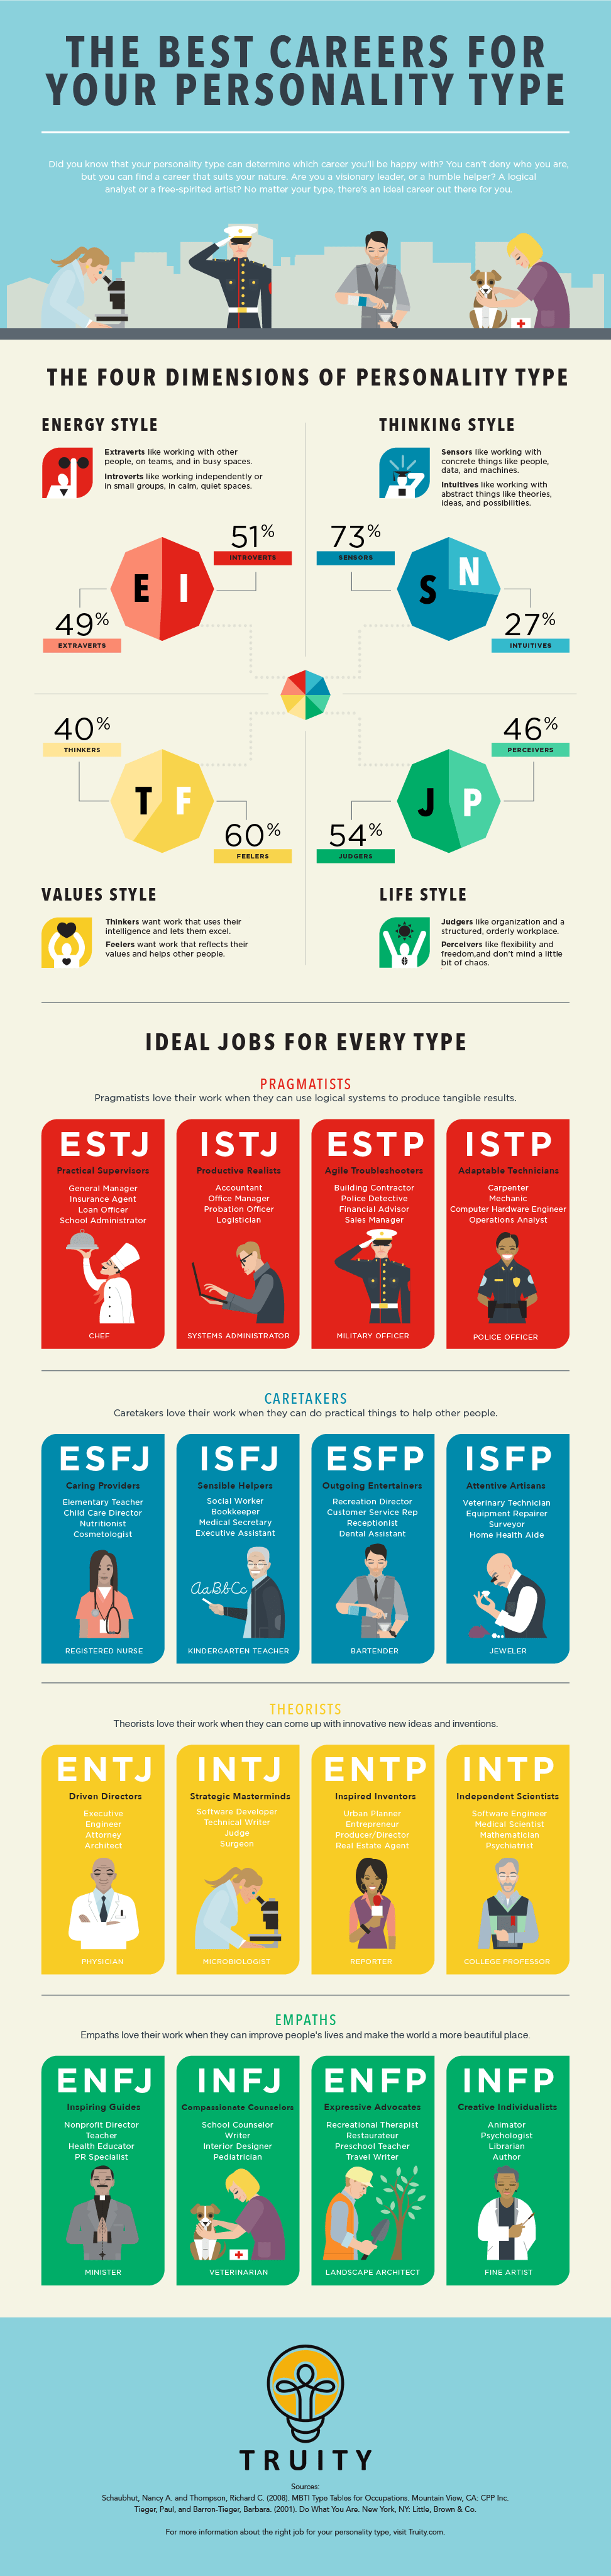 career for personality type